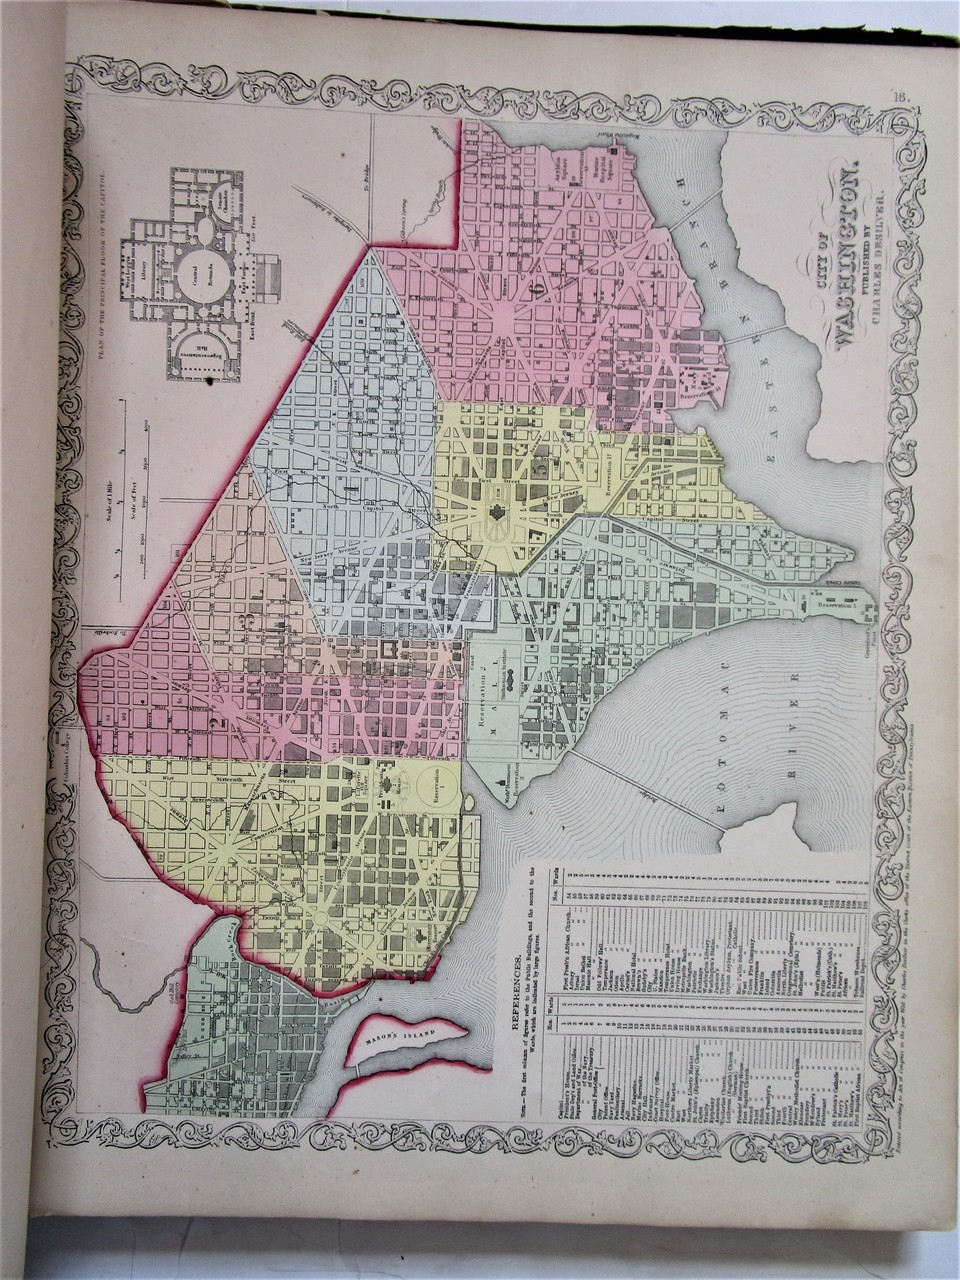 NEW UNIVERSAL ATLAS OF THE WORLD, by Mitchell - 1857 [Desilver]